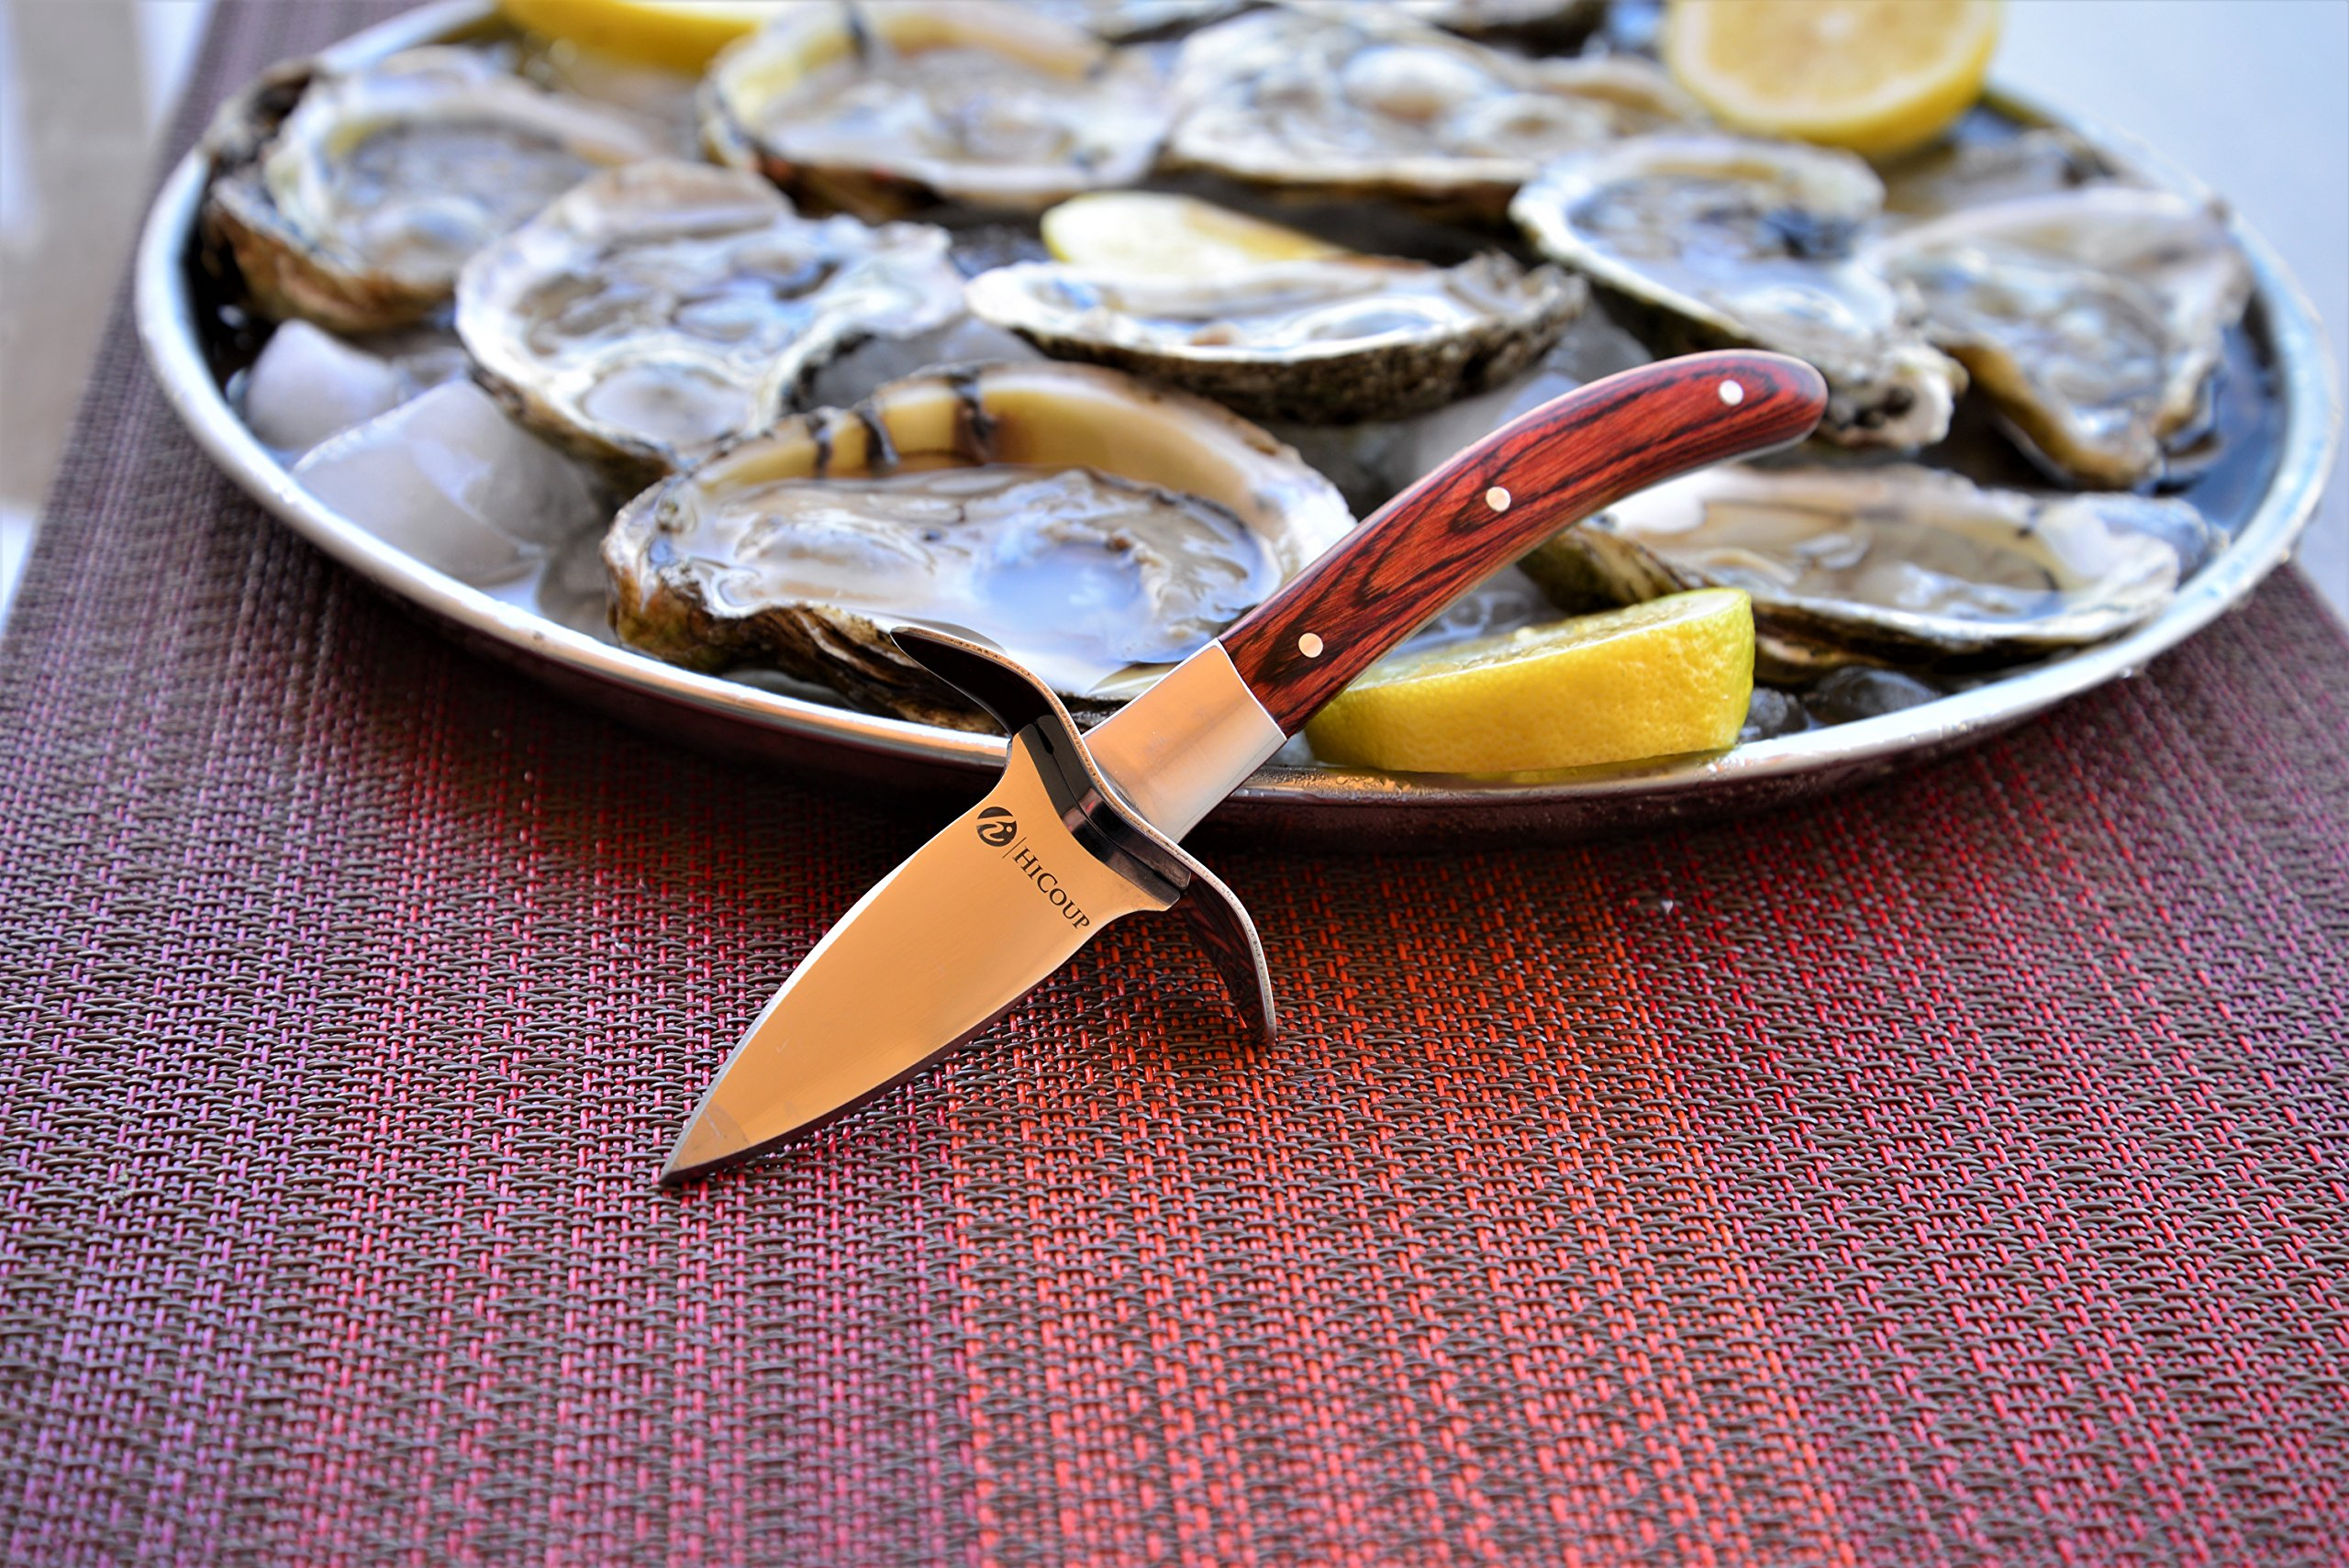 """Oyster Knife By HiCoup – Premium Quality Pakka Wood-handle Oyster Shucking Knife with """"Full Tang"""" Blade and Bonus Sheath by HiCoup Kitchenware (Image #5)"""